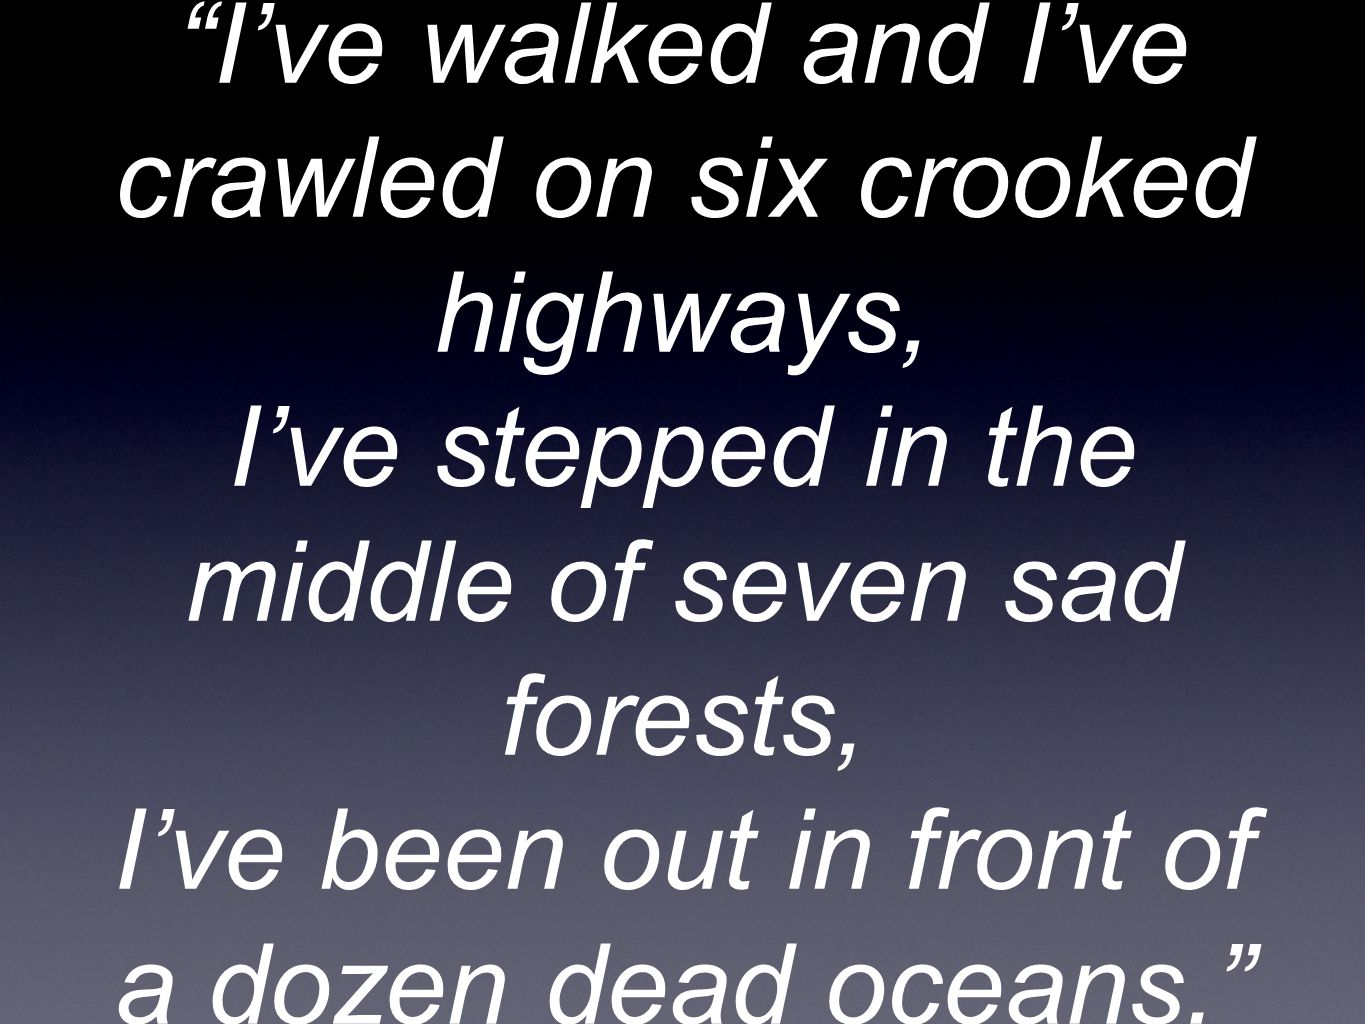 I've walked and I've crawled on six crooked highways, I've stepped in the middle of seven sad forests, I've been out in front of a dozen dead oceans.